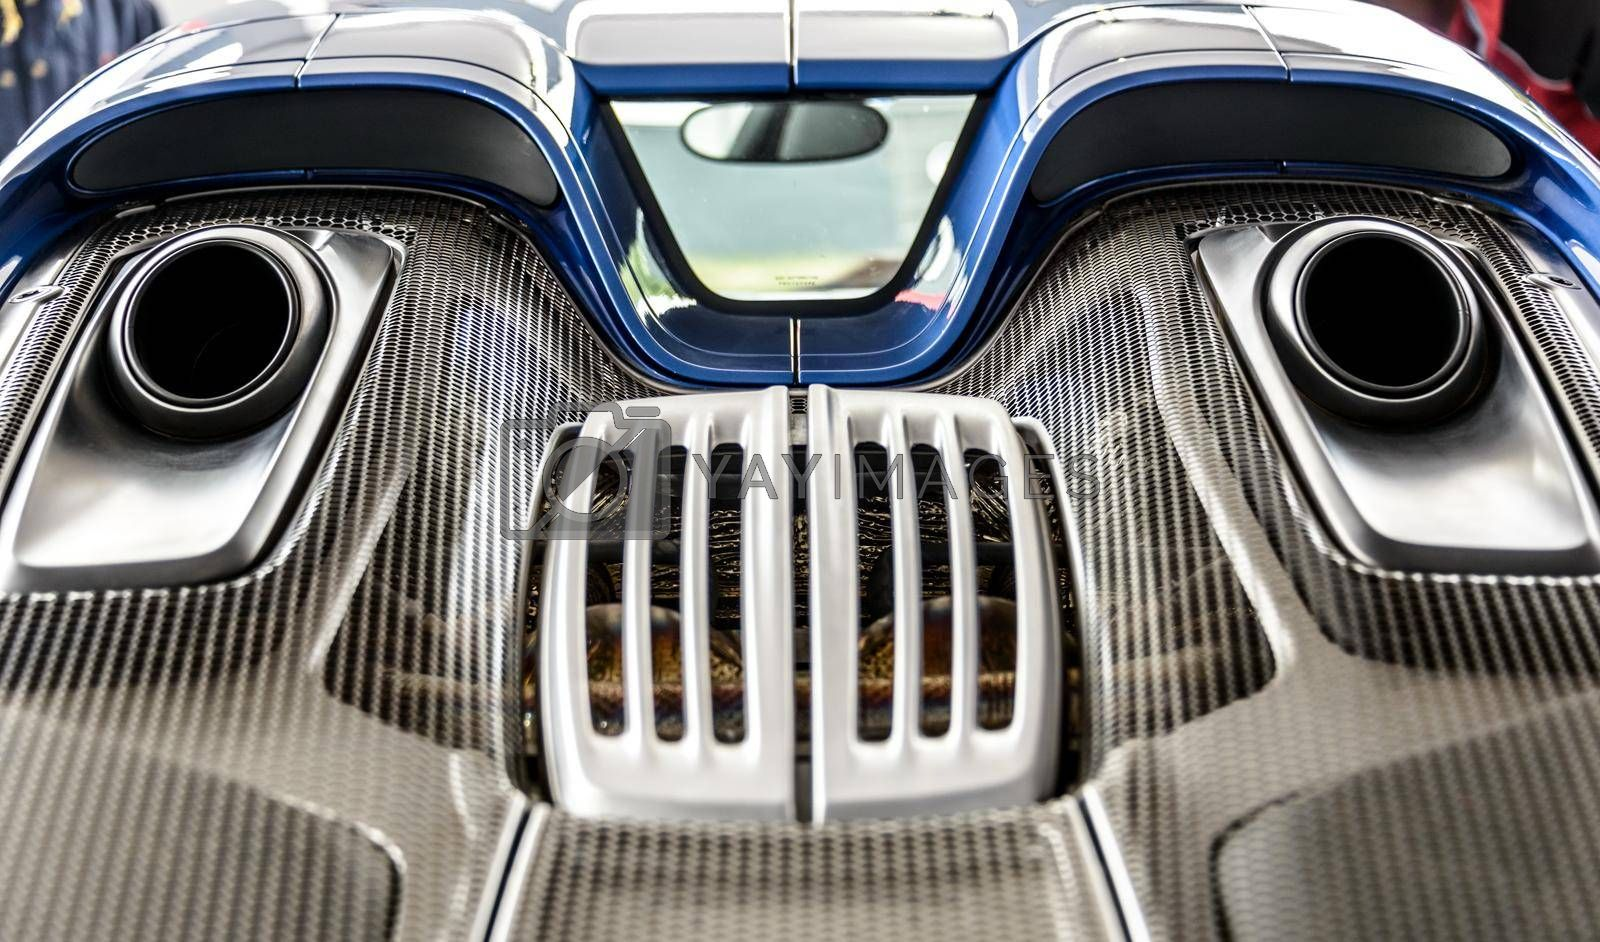 LONDON, UK - CIRCA JUNE 2014: Porsche 918 Spyder top mounted exhaust system and engine cover detail shot.